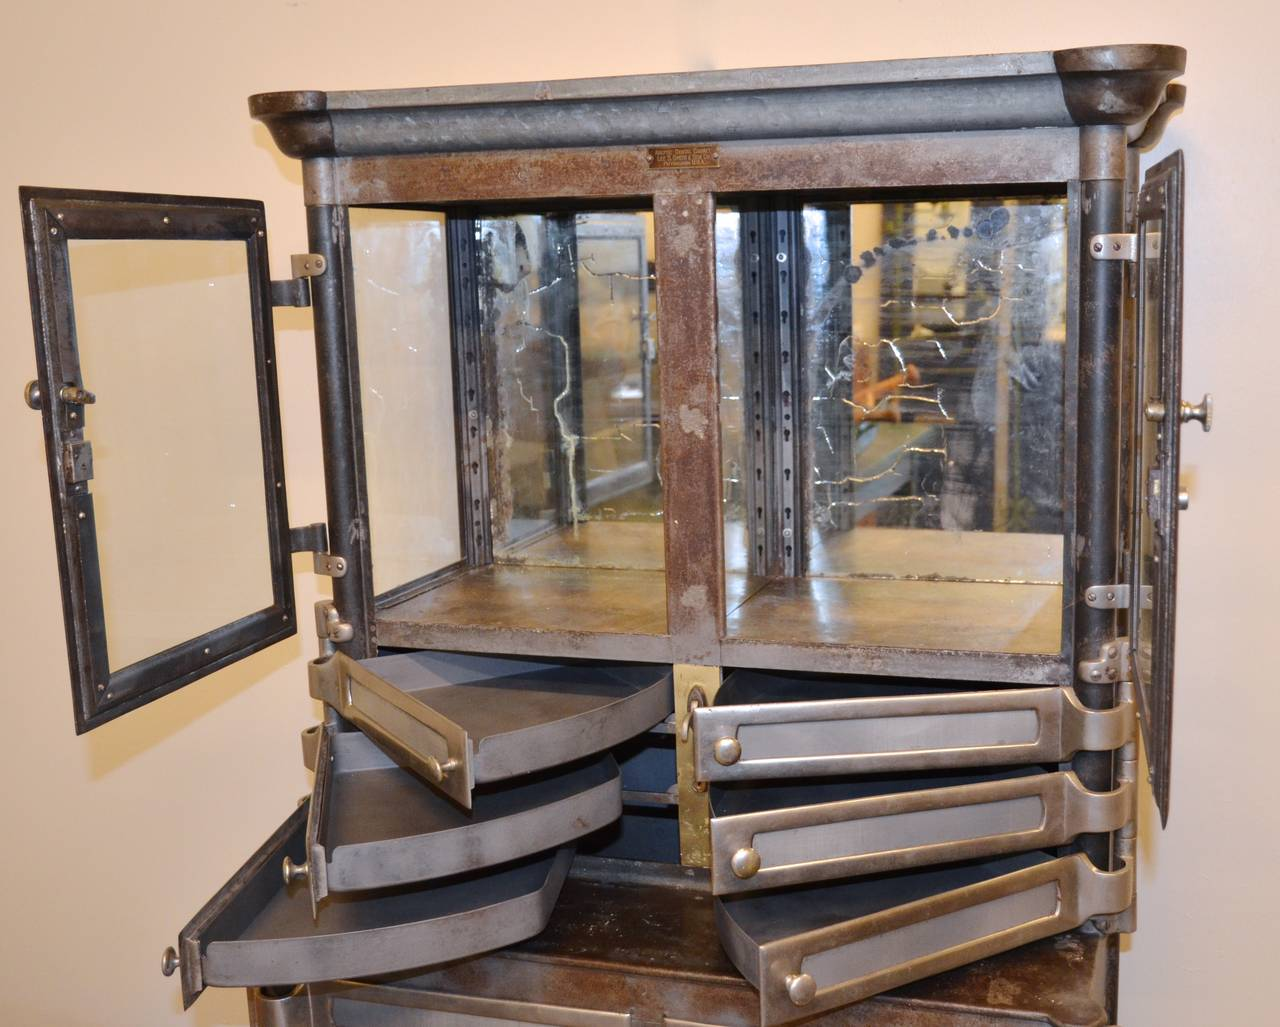 Incroyable Victorian Nickel And Steel Aseptic Dental Cabinet, Lee S. Smith Co., Circa